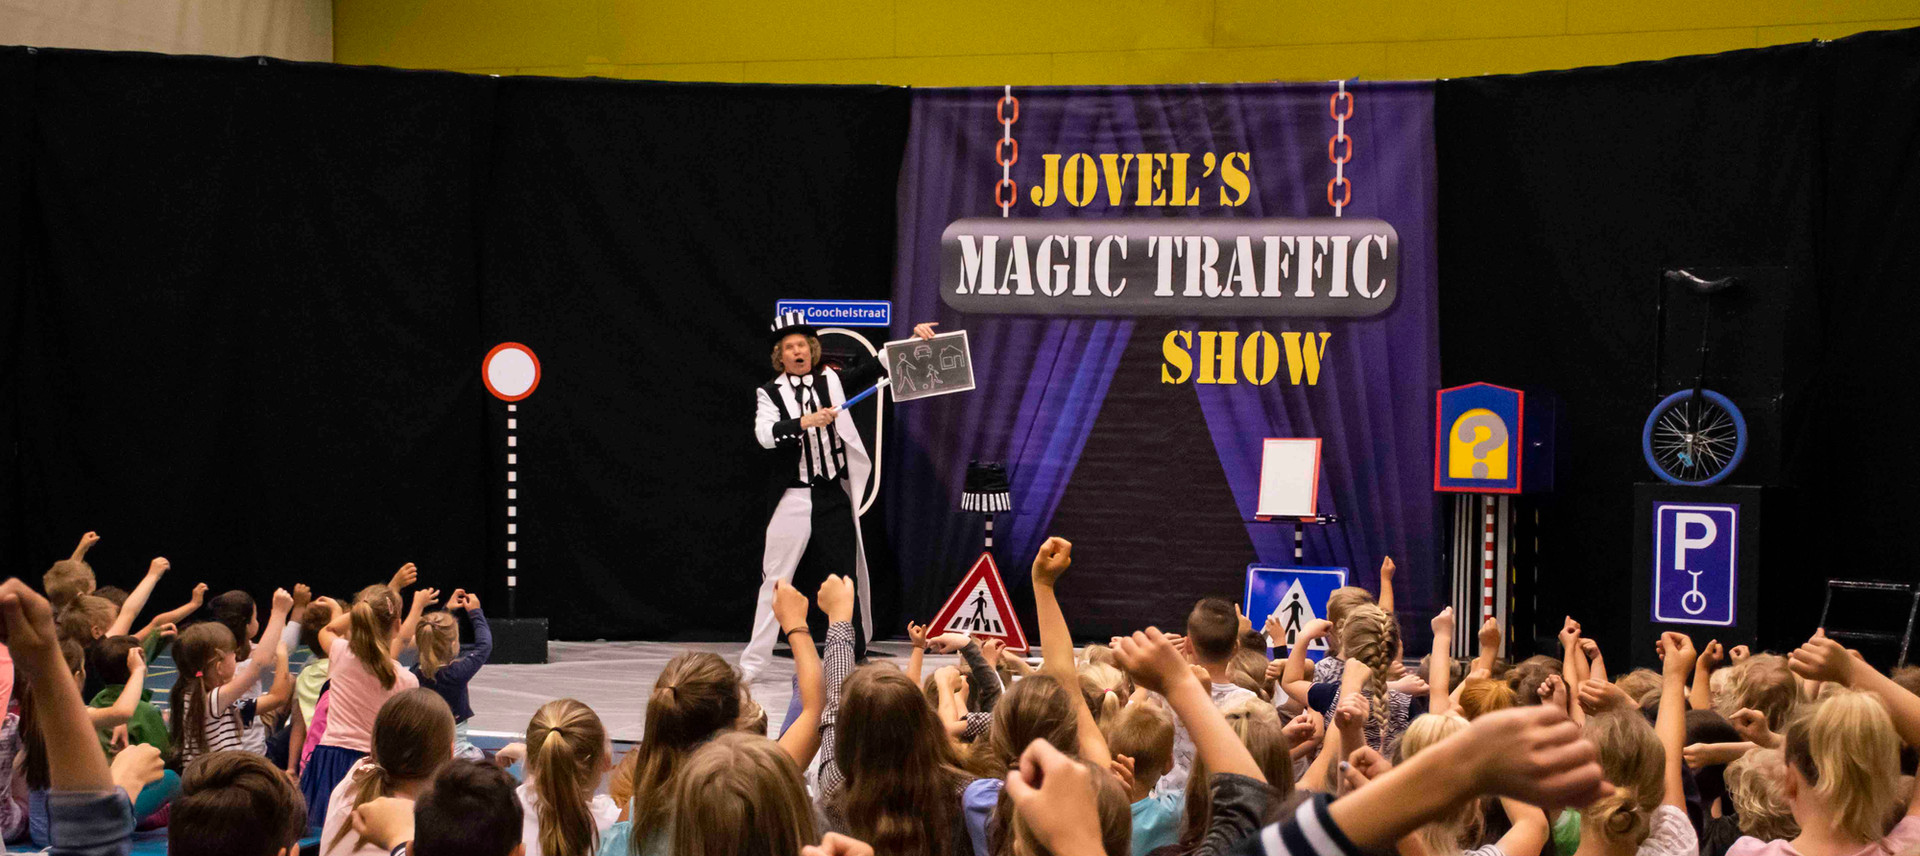 voorstelling verkeer magic traffic show